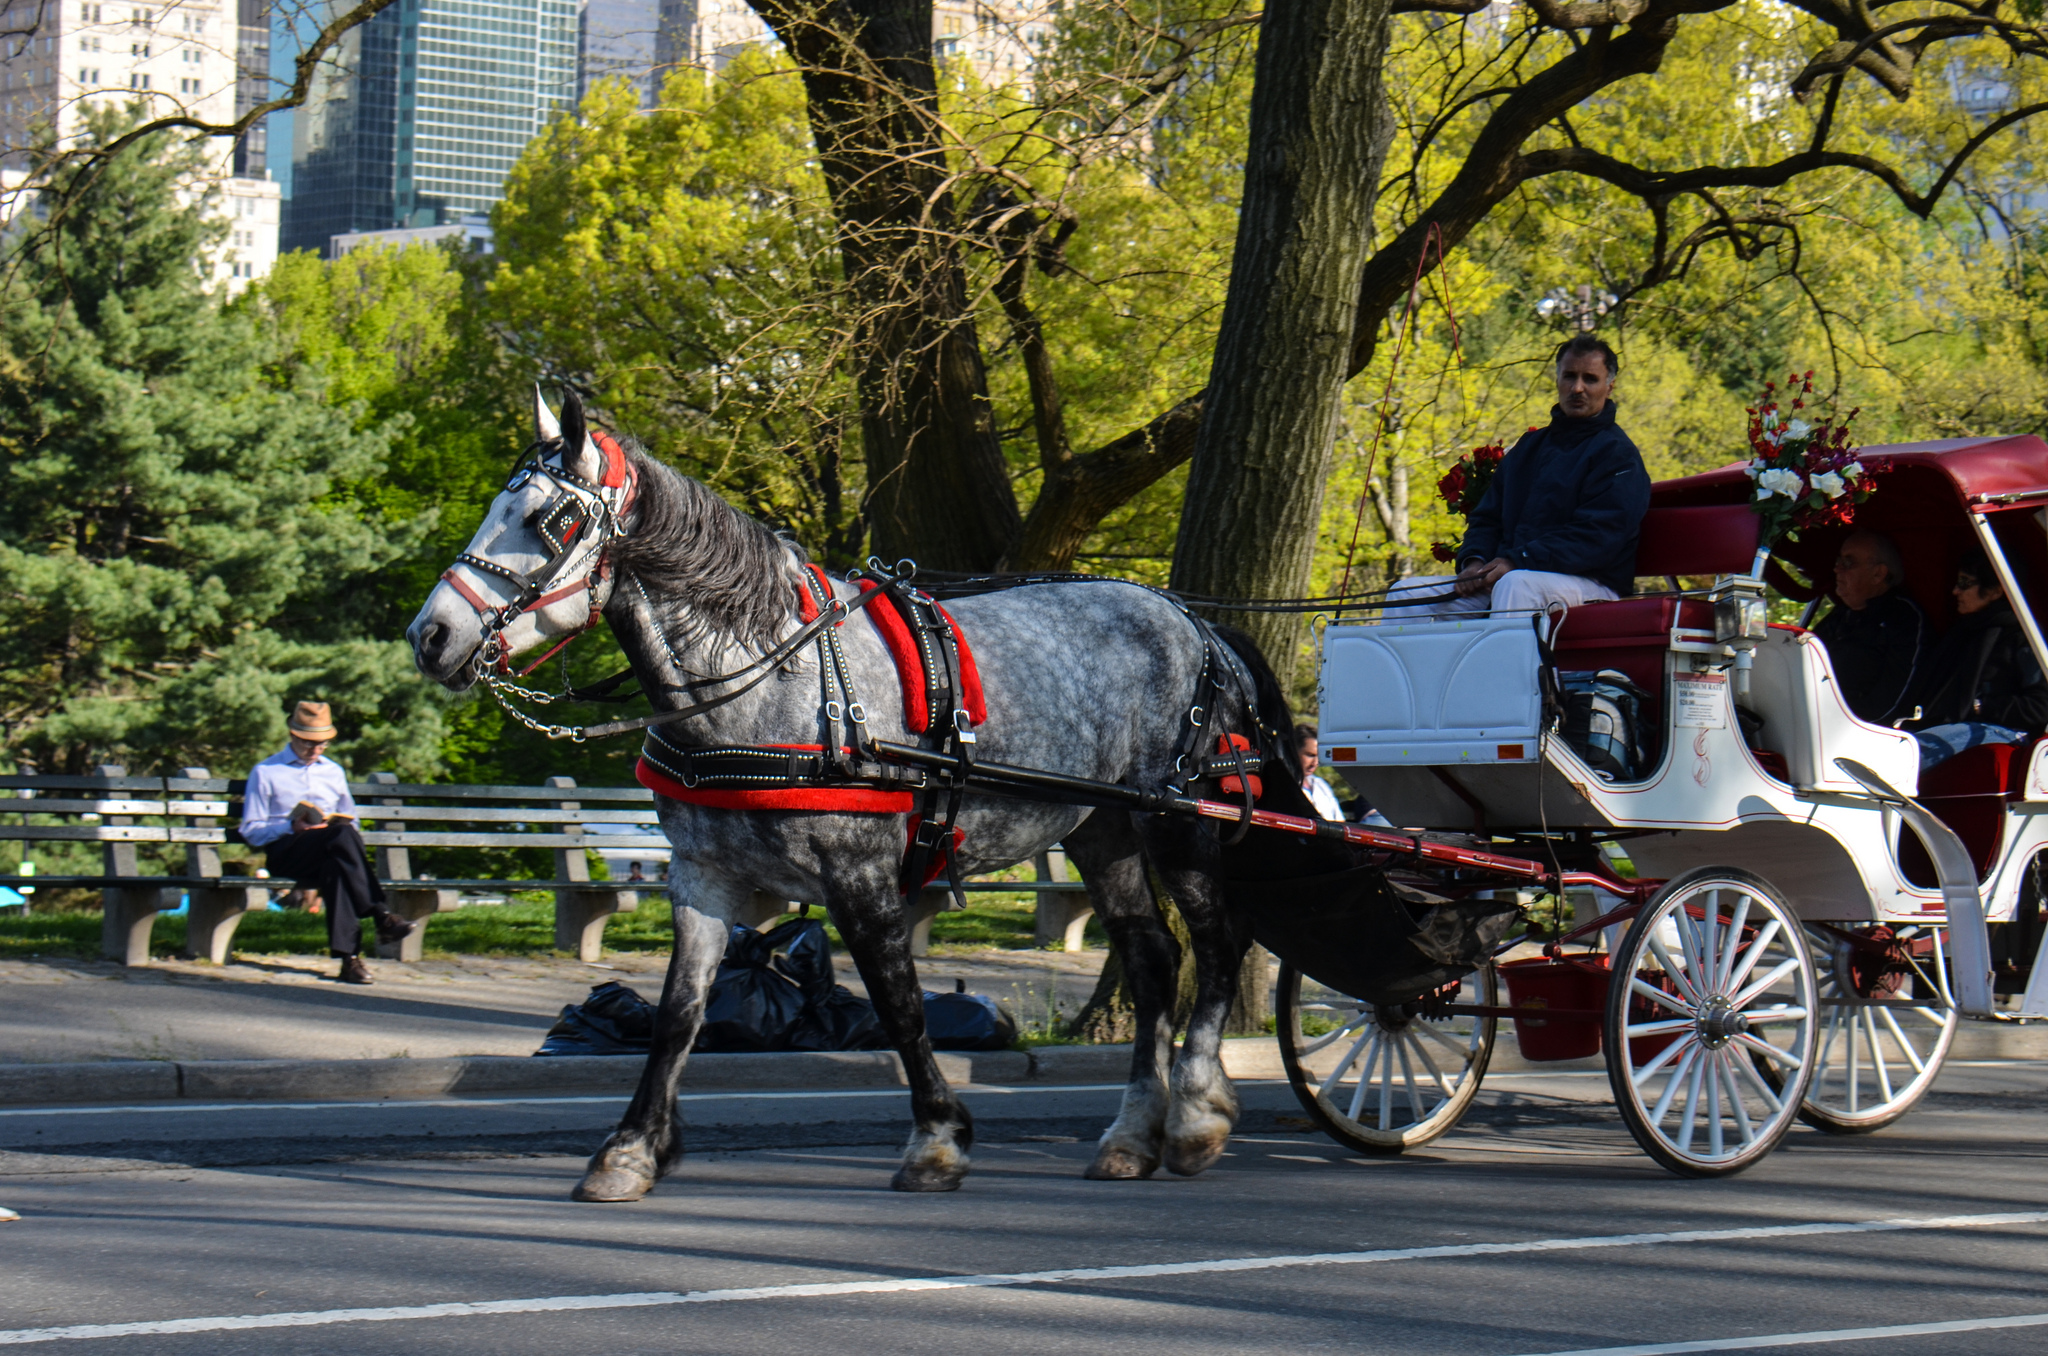 nyc pulls reins on plan for central park horse carriages wfuv. Black Bedroom Furniture Sets. Home Design Ideas